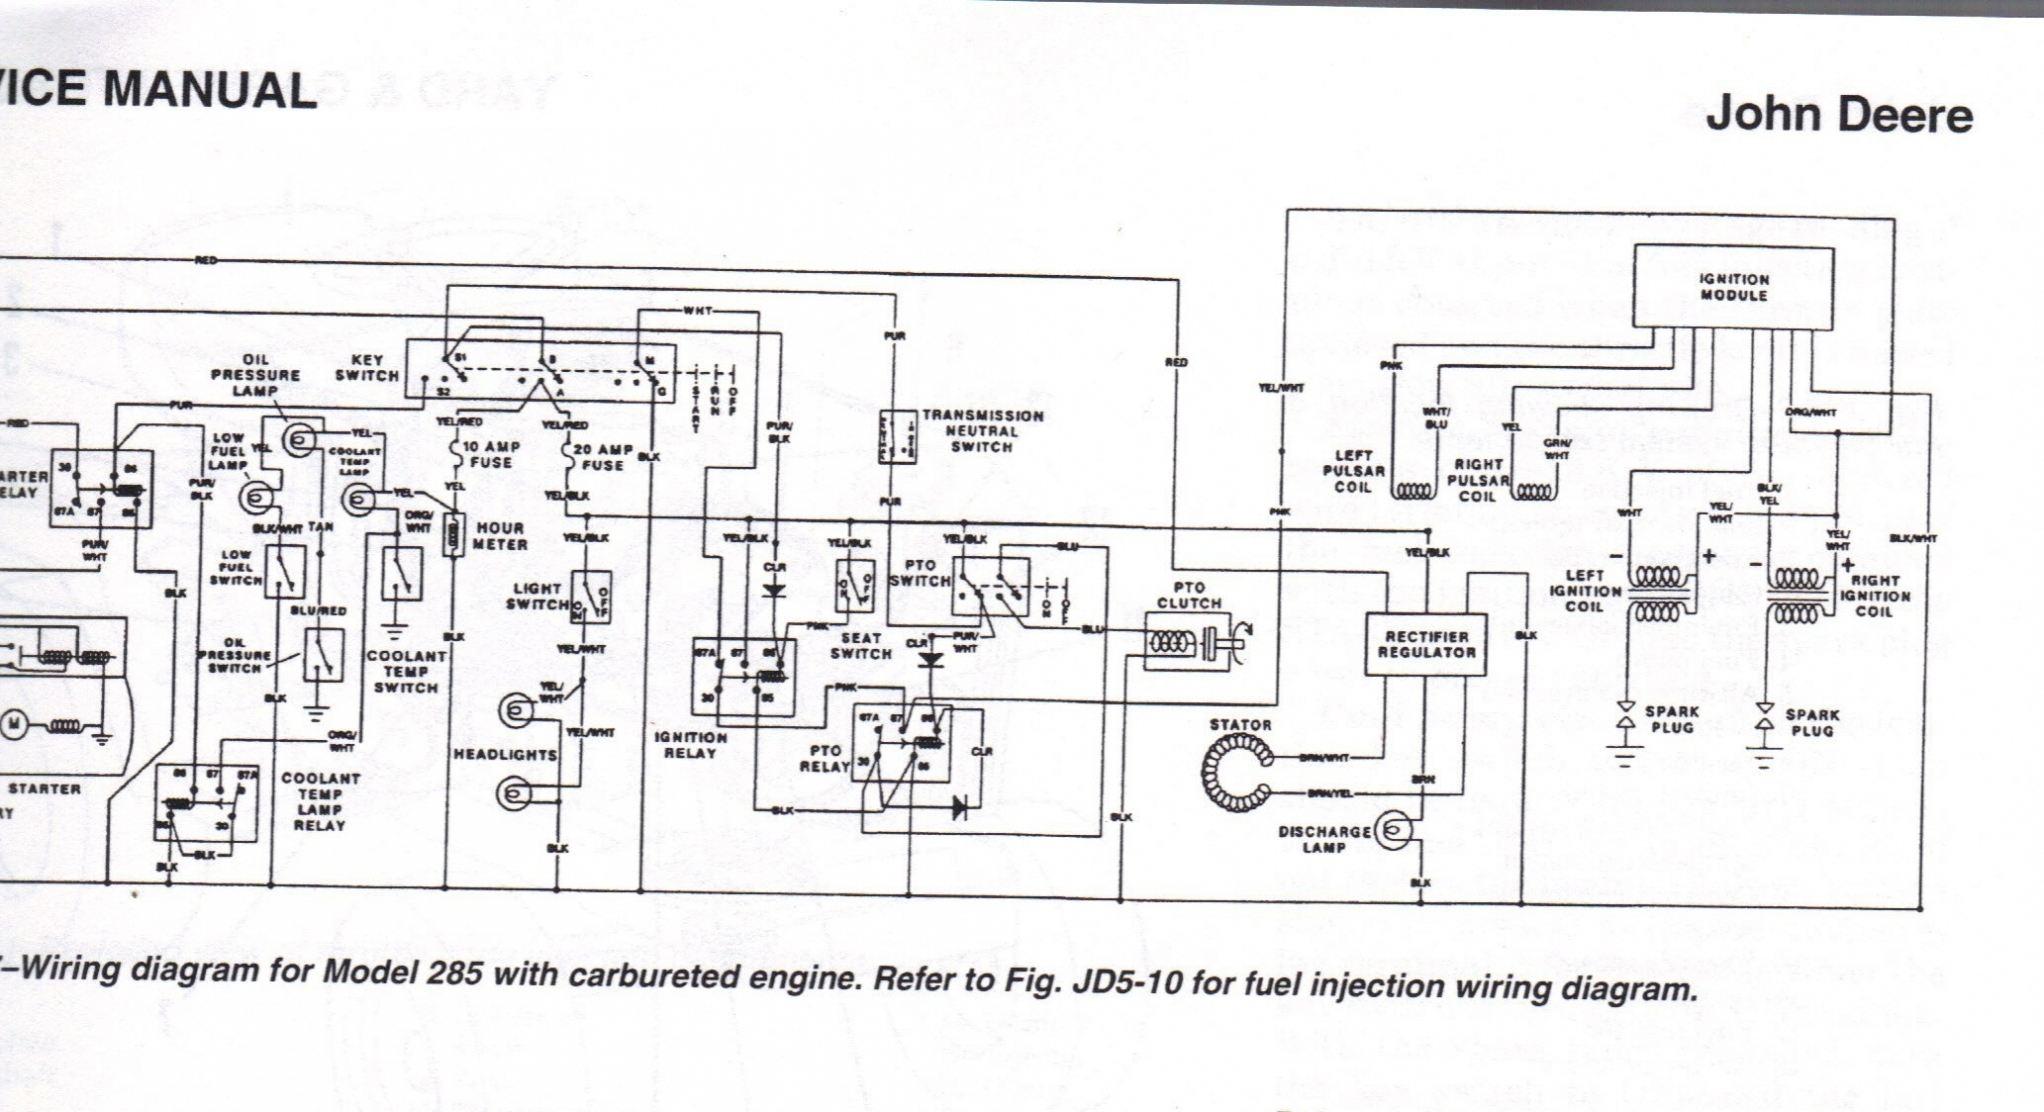 John Deere 110 Ignition Wiring Diagram